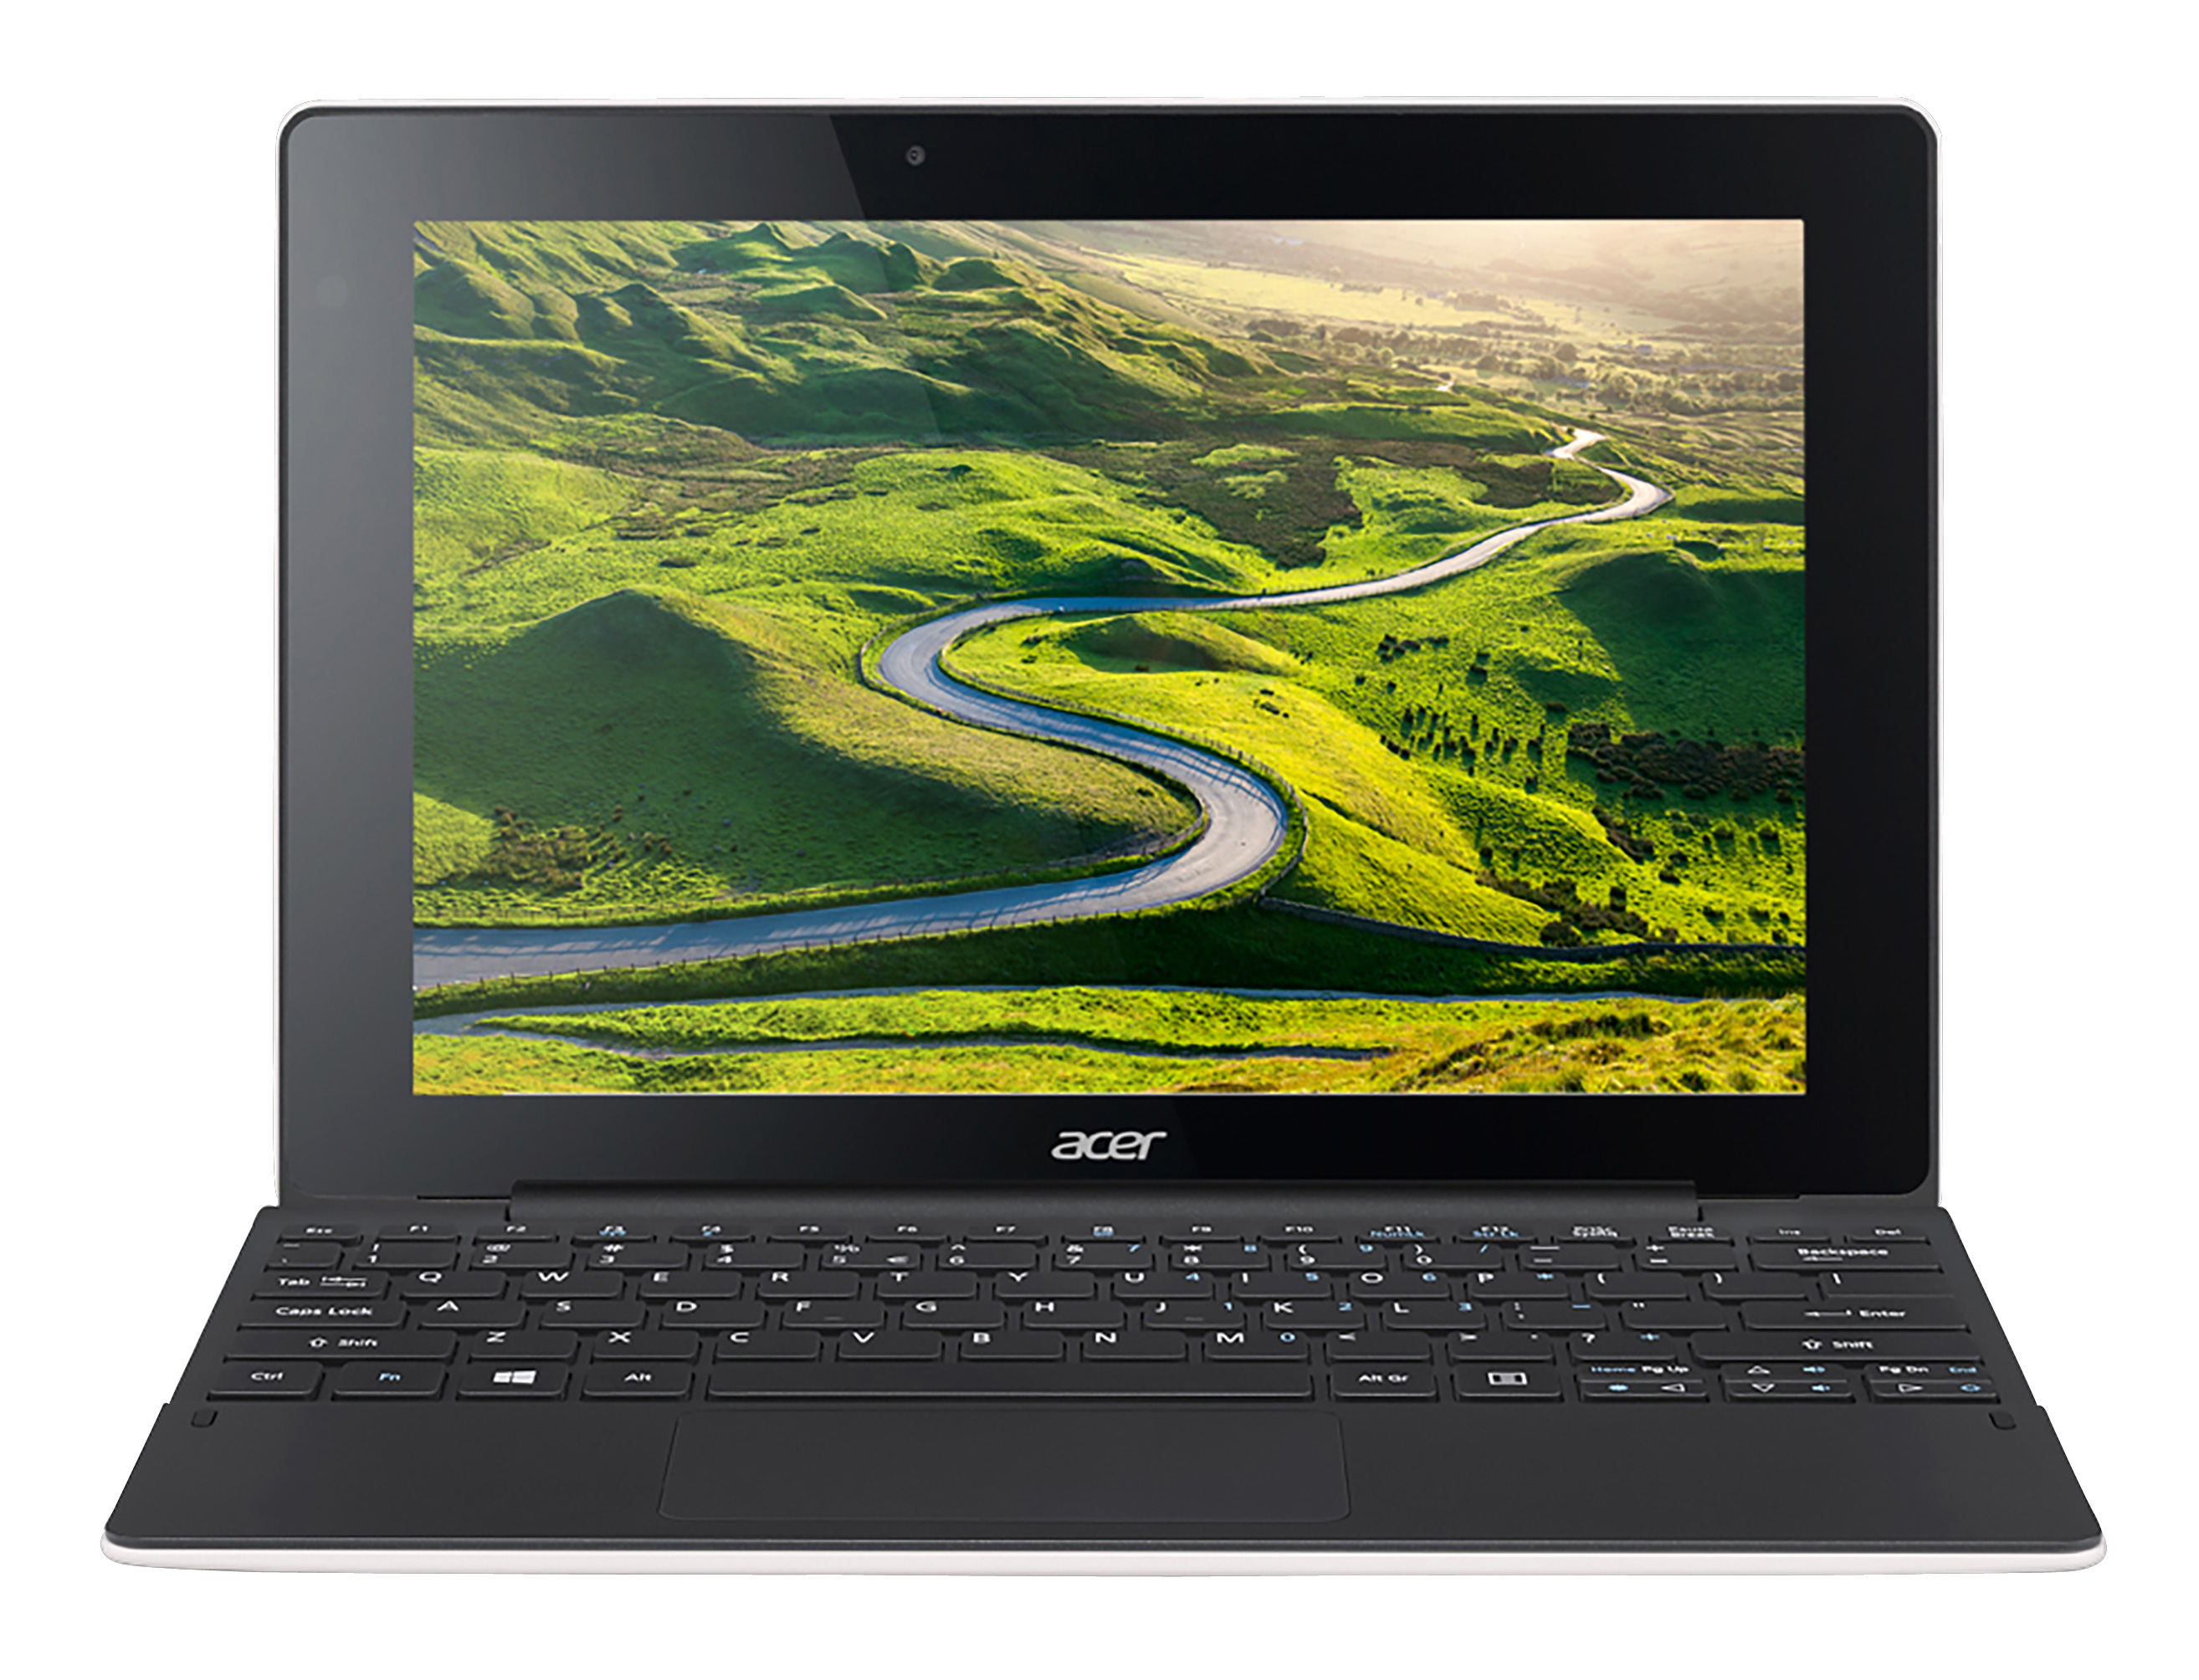 Stockists of Acer Switch 10E 101 Touchscreen 2-in-1 Laptop Tablet